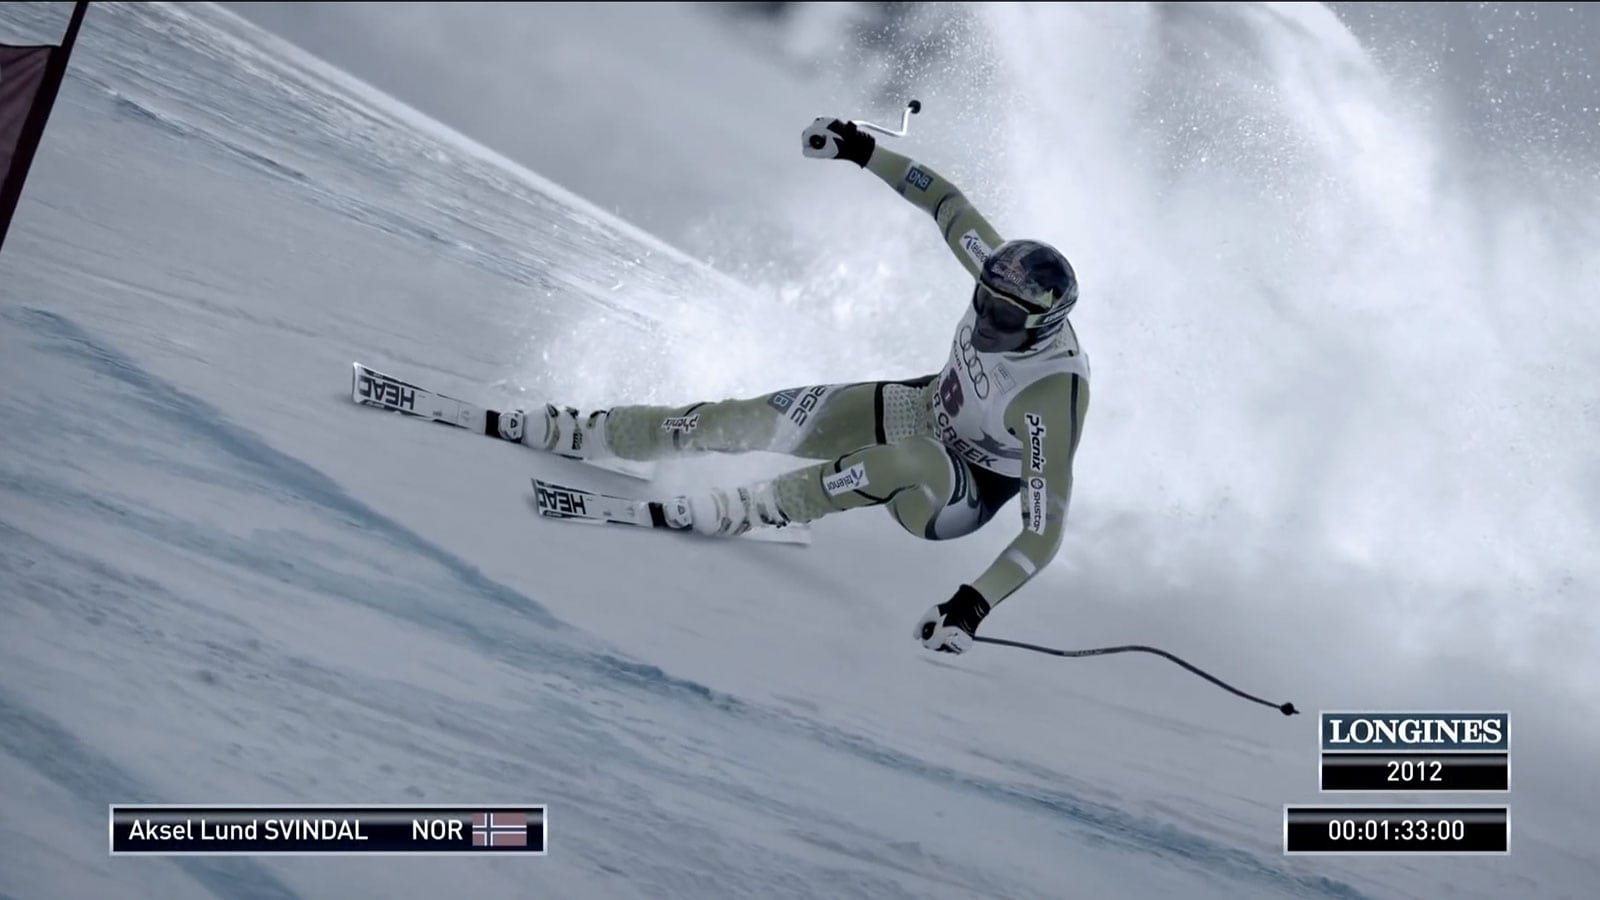 Vidéo Longines TV ad - Timing Skiing History with Aksel Lund Svindal